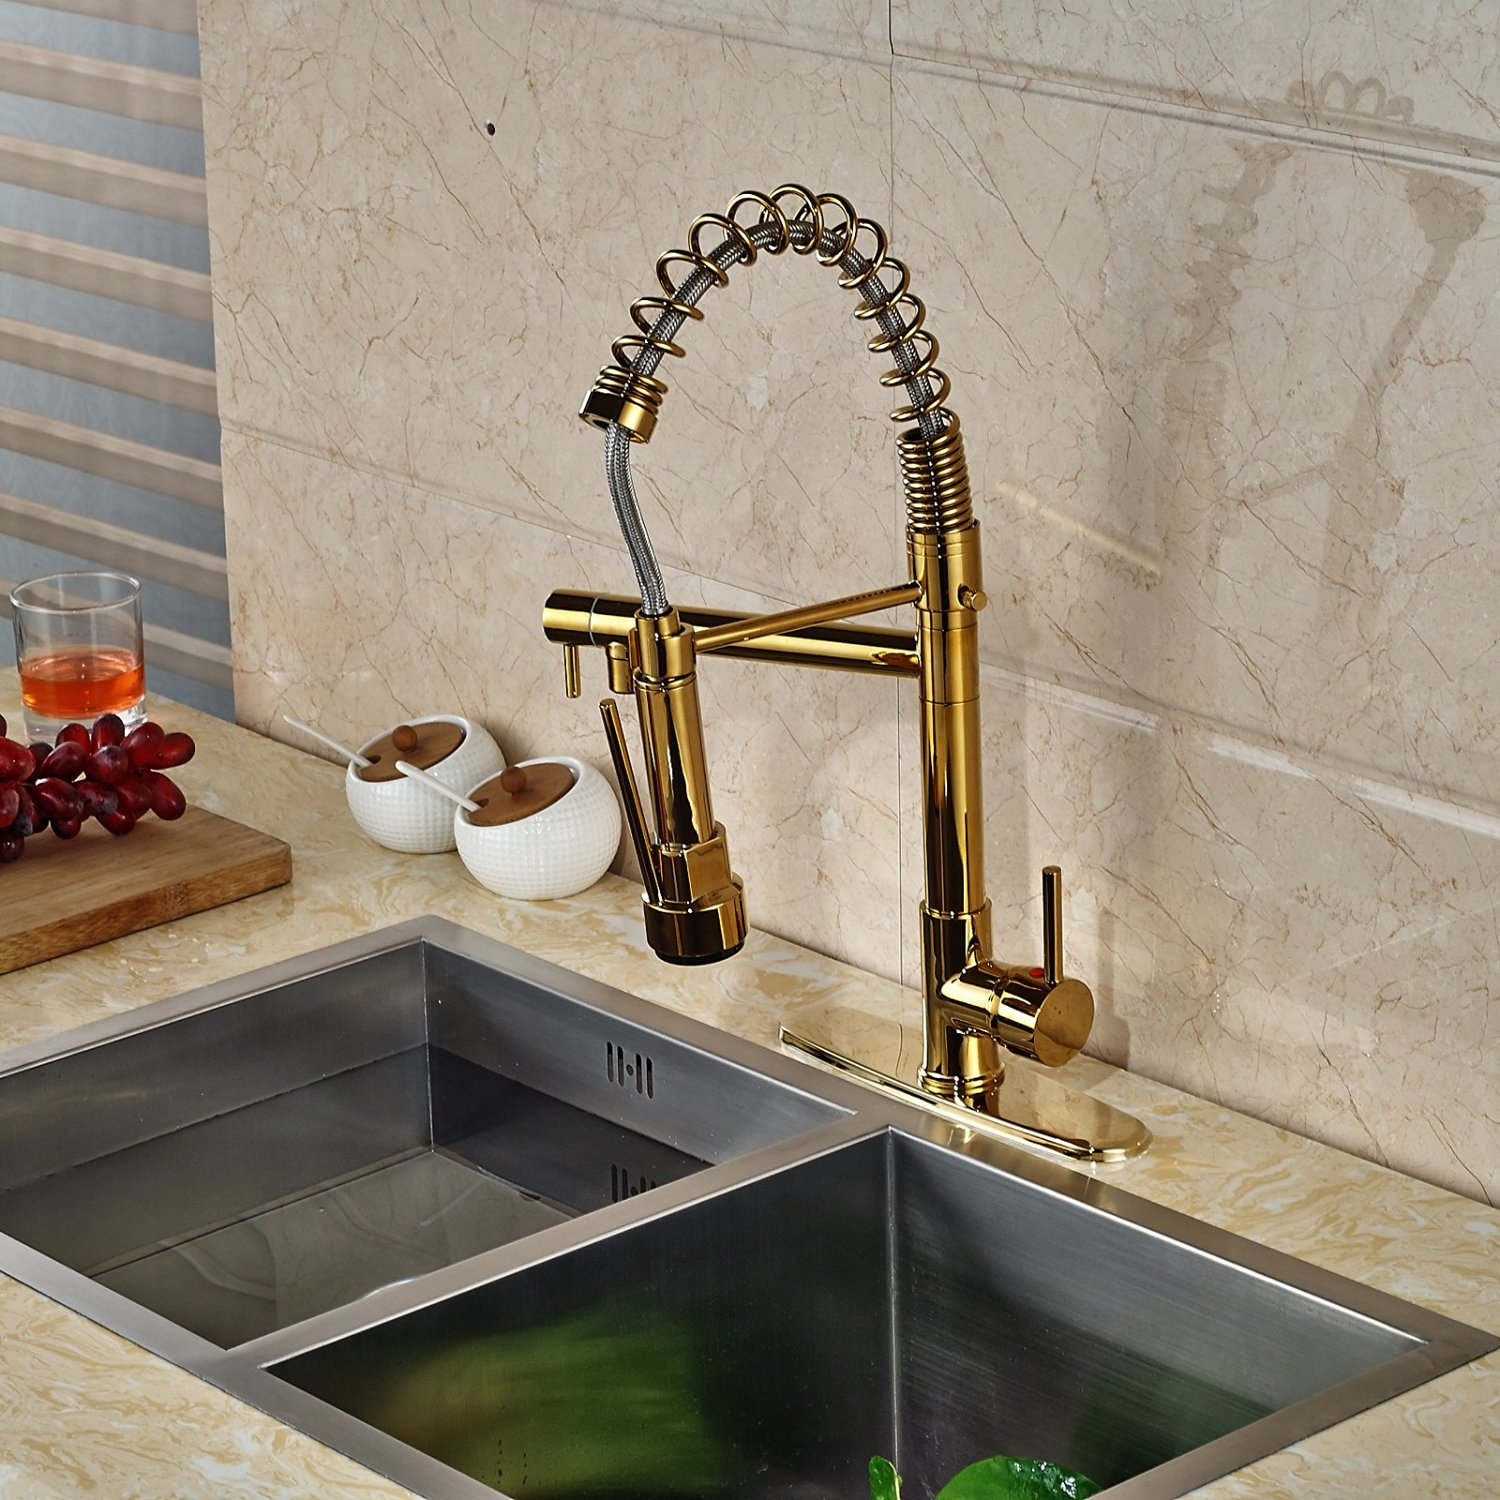 fsrjs kitchen sink faucet Venezuela Gold Finish Kitchen Sink Faucet with Pull Down Faucet